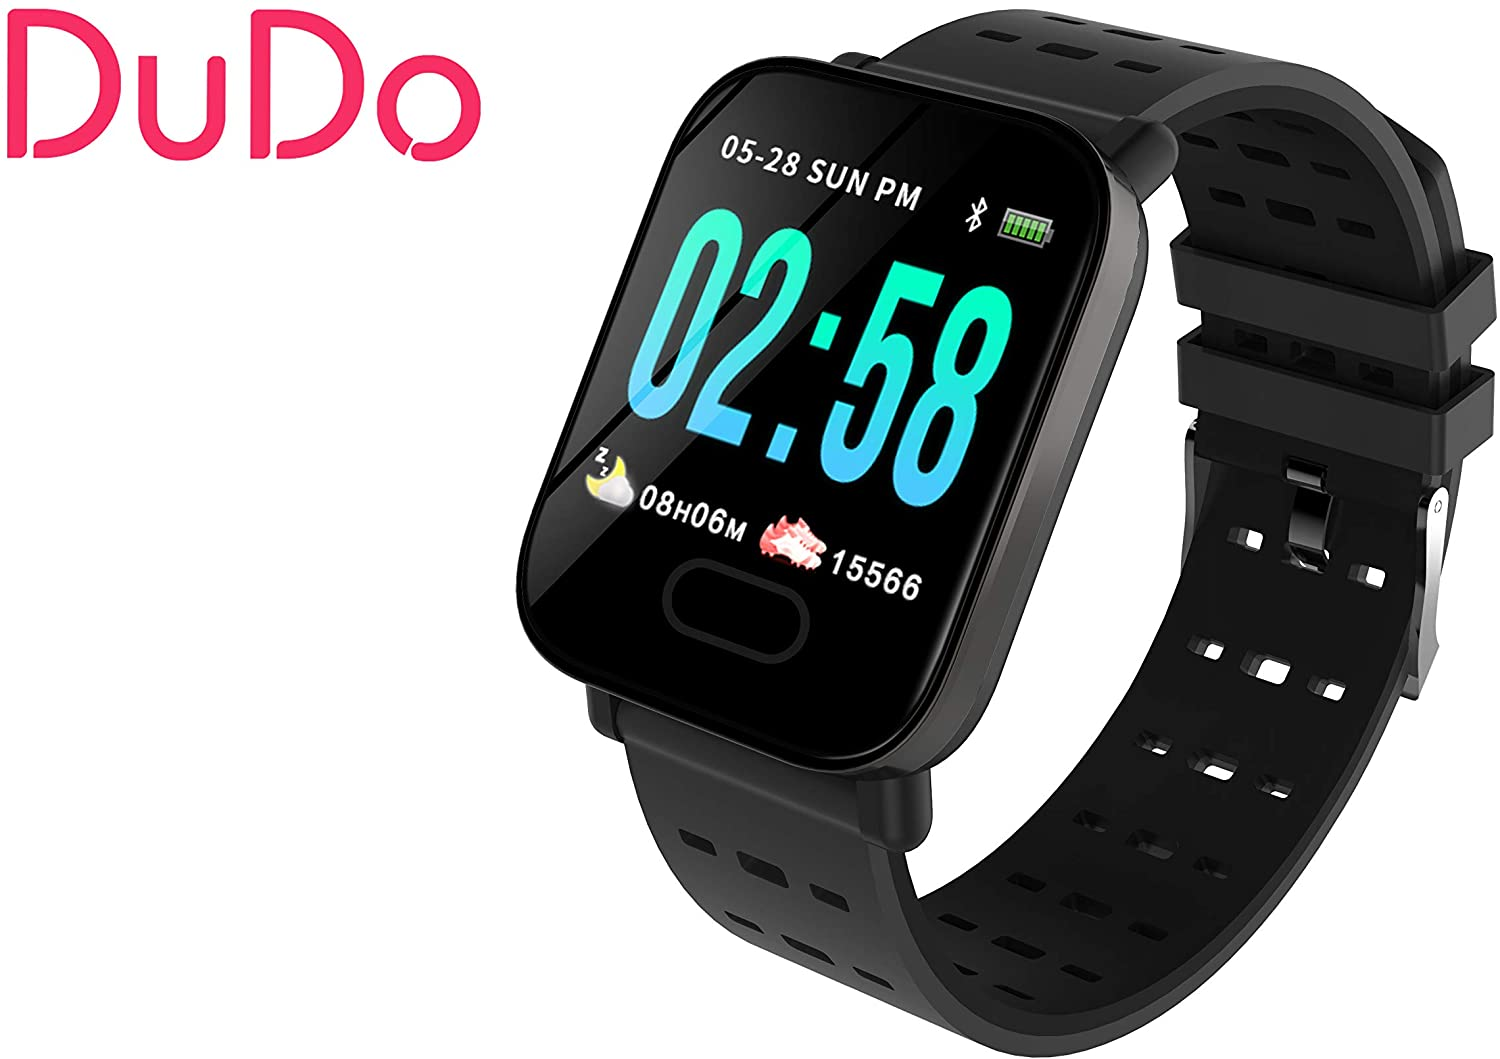 New Smart Watch Men Women DUDO A6 Heart Rate Monitor Blood Pressure Fitness Tracker Smartwatch Sport Watch for iOS Android (Black)